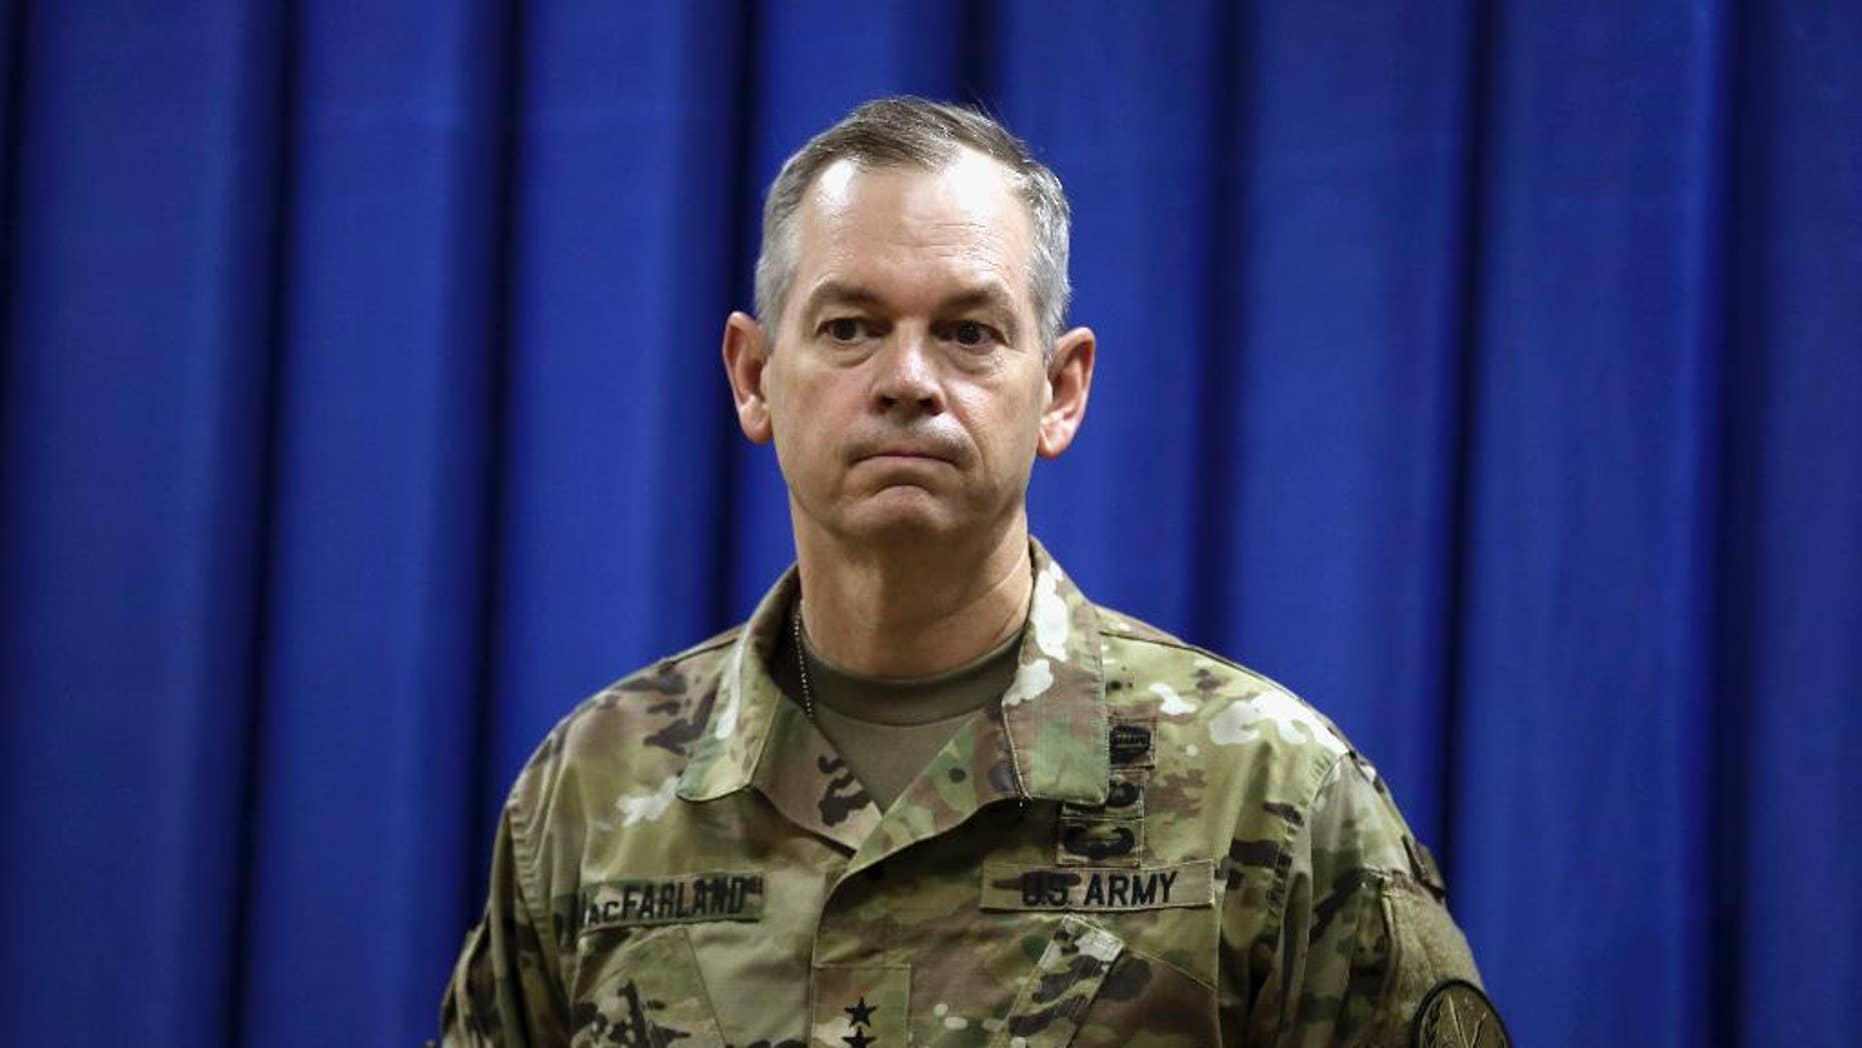 FILE - In this Oct. 1, 2015, file photo, Lt. Gen. Sean MacFarland, the new commander general of the U.S. led coalition in Iraq, attends a news conference at the U.S. Embassy in the heavily fortified Green Zone in Baghdad, Iraq. The military campaigns in Iraq and Syria have taken 45,000 enemy combatants off the battlefield, and reduced the total number of Islamic State fighters to as few as 15,000, the top U.S. commander for the fight against IS said Aug. 10, 2016. MacFarland said that both the number and quality of IS fighters is declining and warned that it is difficult to determine accurate numbers.  (AP Photo/Khalid Mohammed, File)